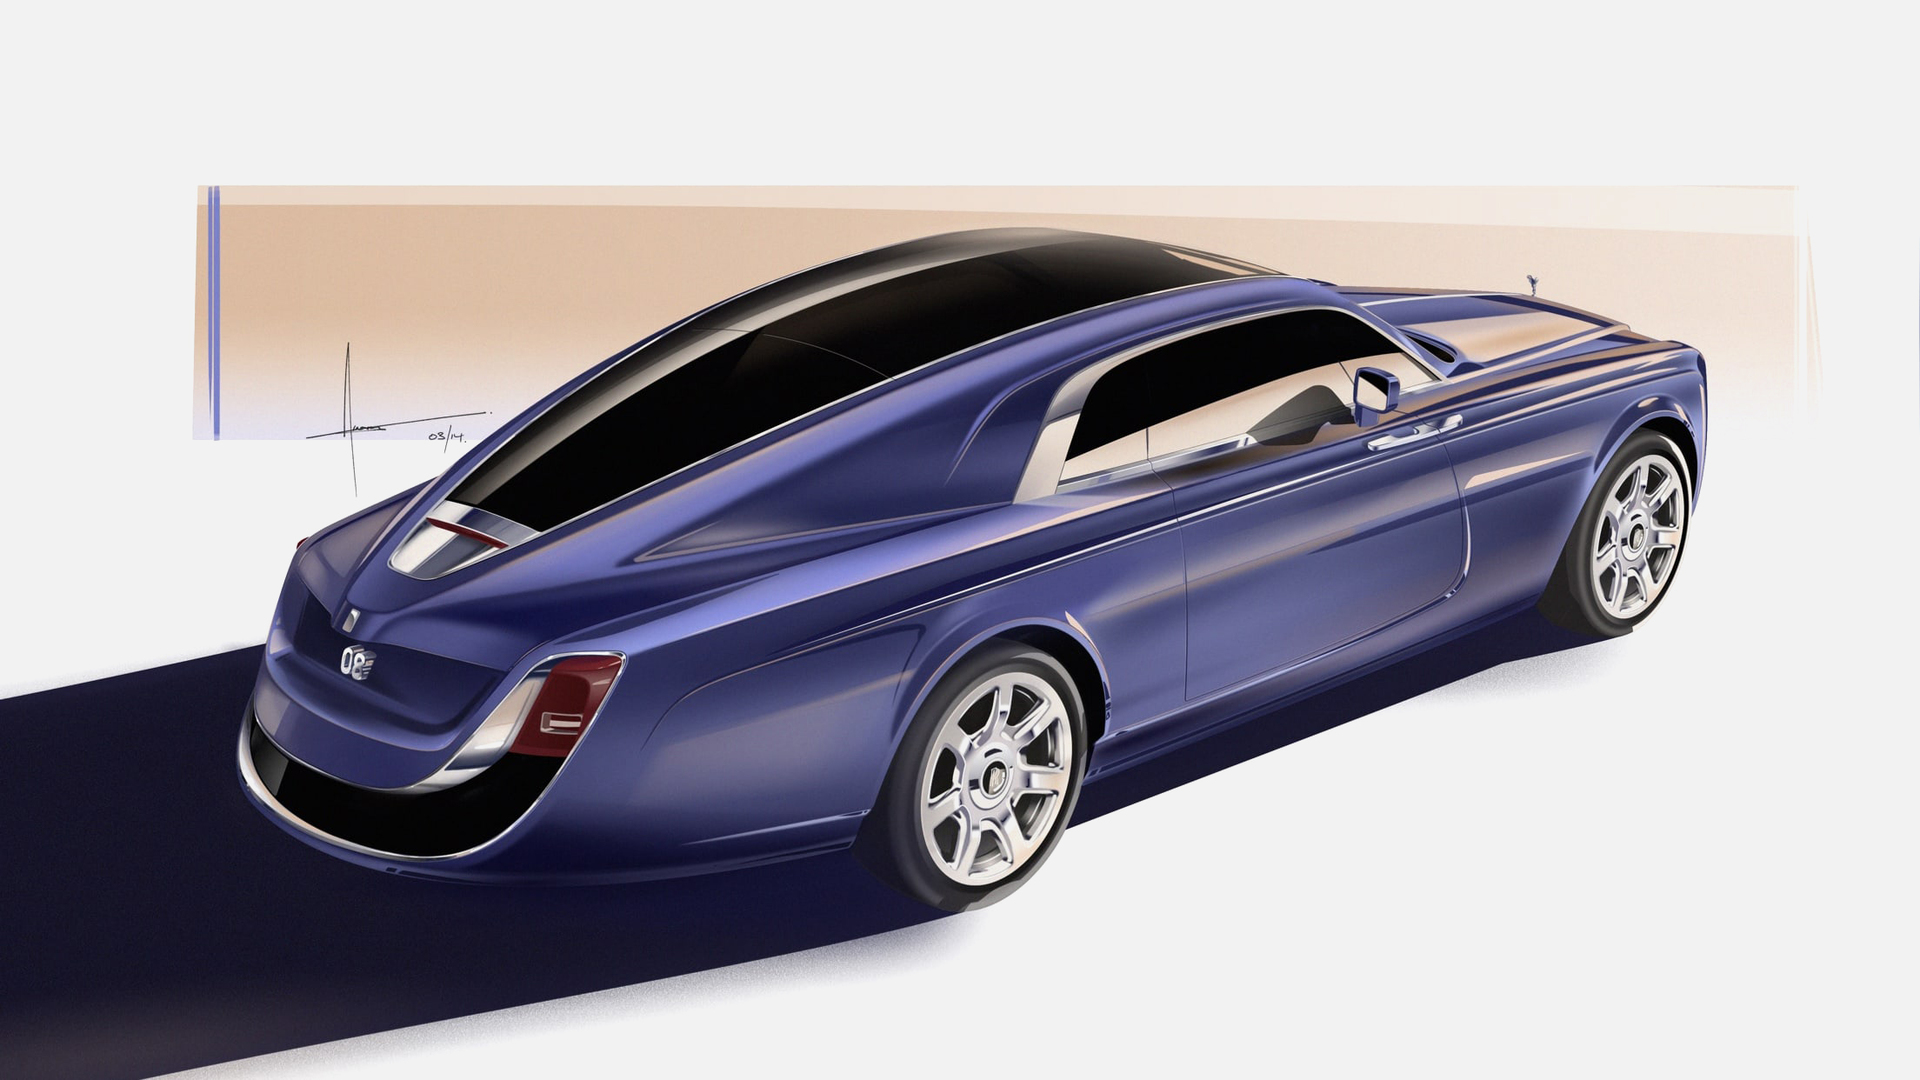 Side view of the Rolls-Royce Sweptail